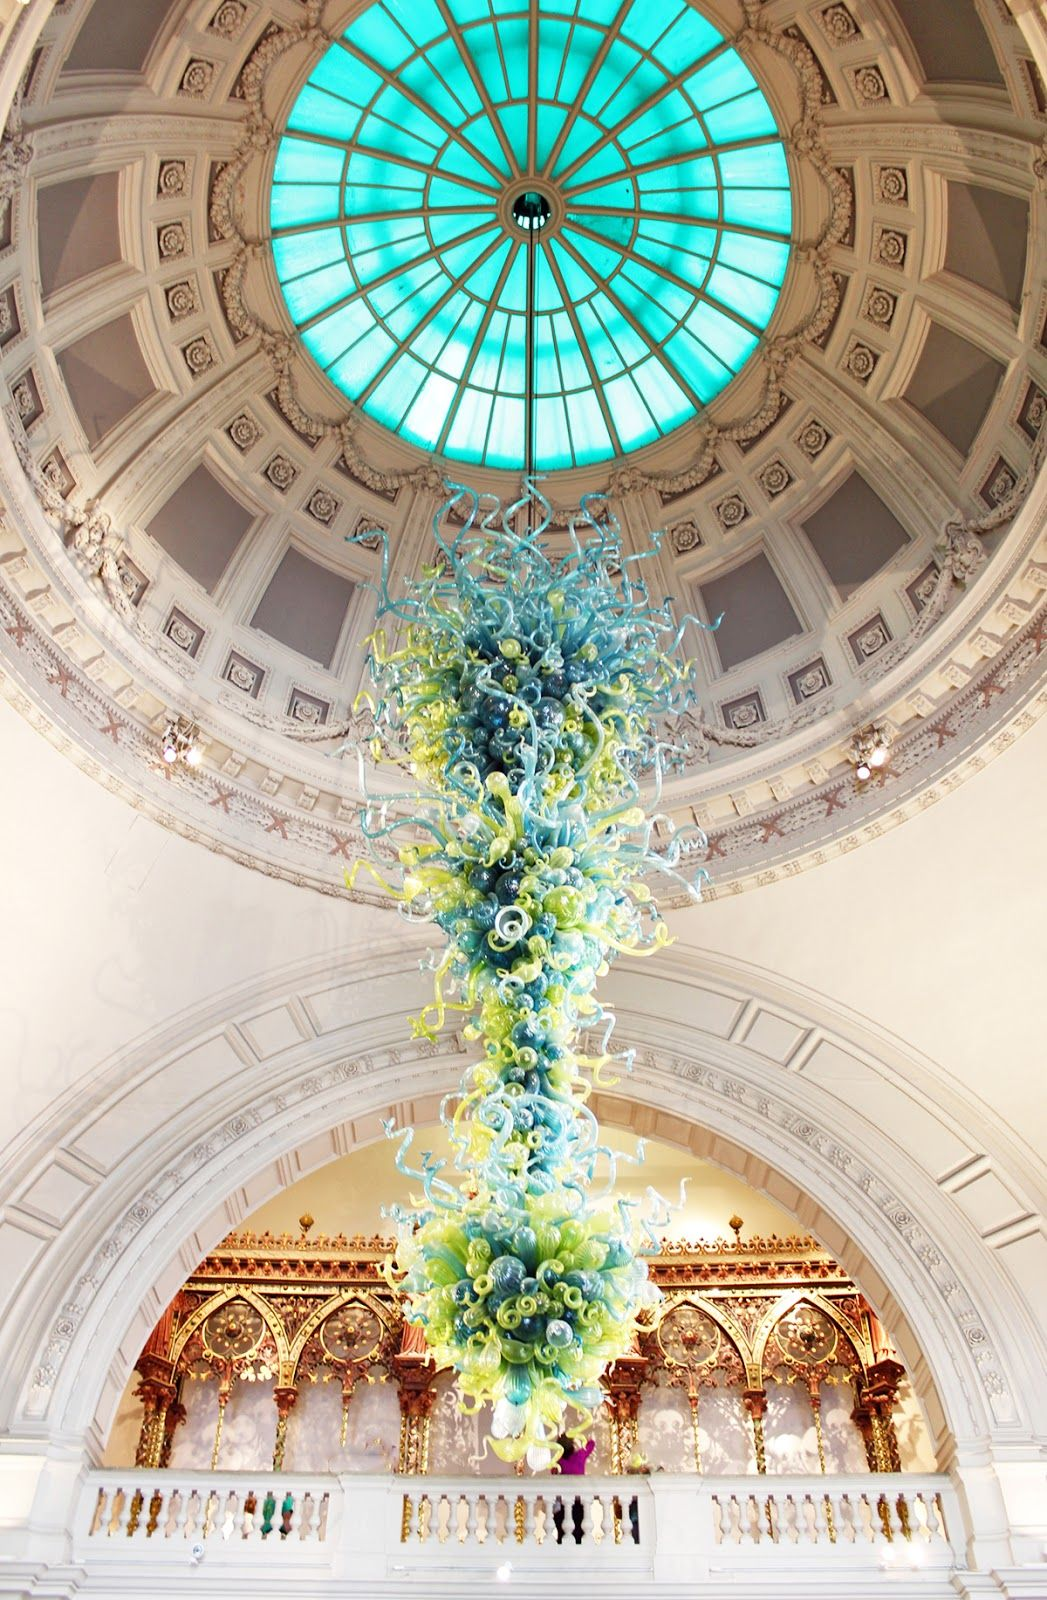 Chihuly victoria albert museum london art am dolce vita t rotunda blown glass chandelier by dale chihuly under the dome of the victoria and albert museums main entrance arubaitofo Choice Image